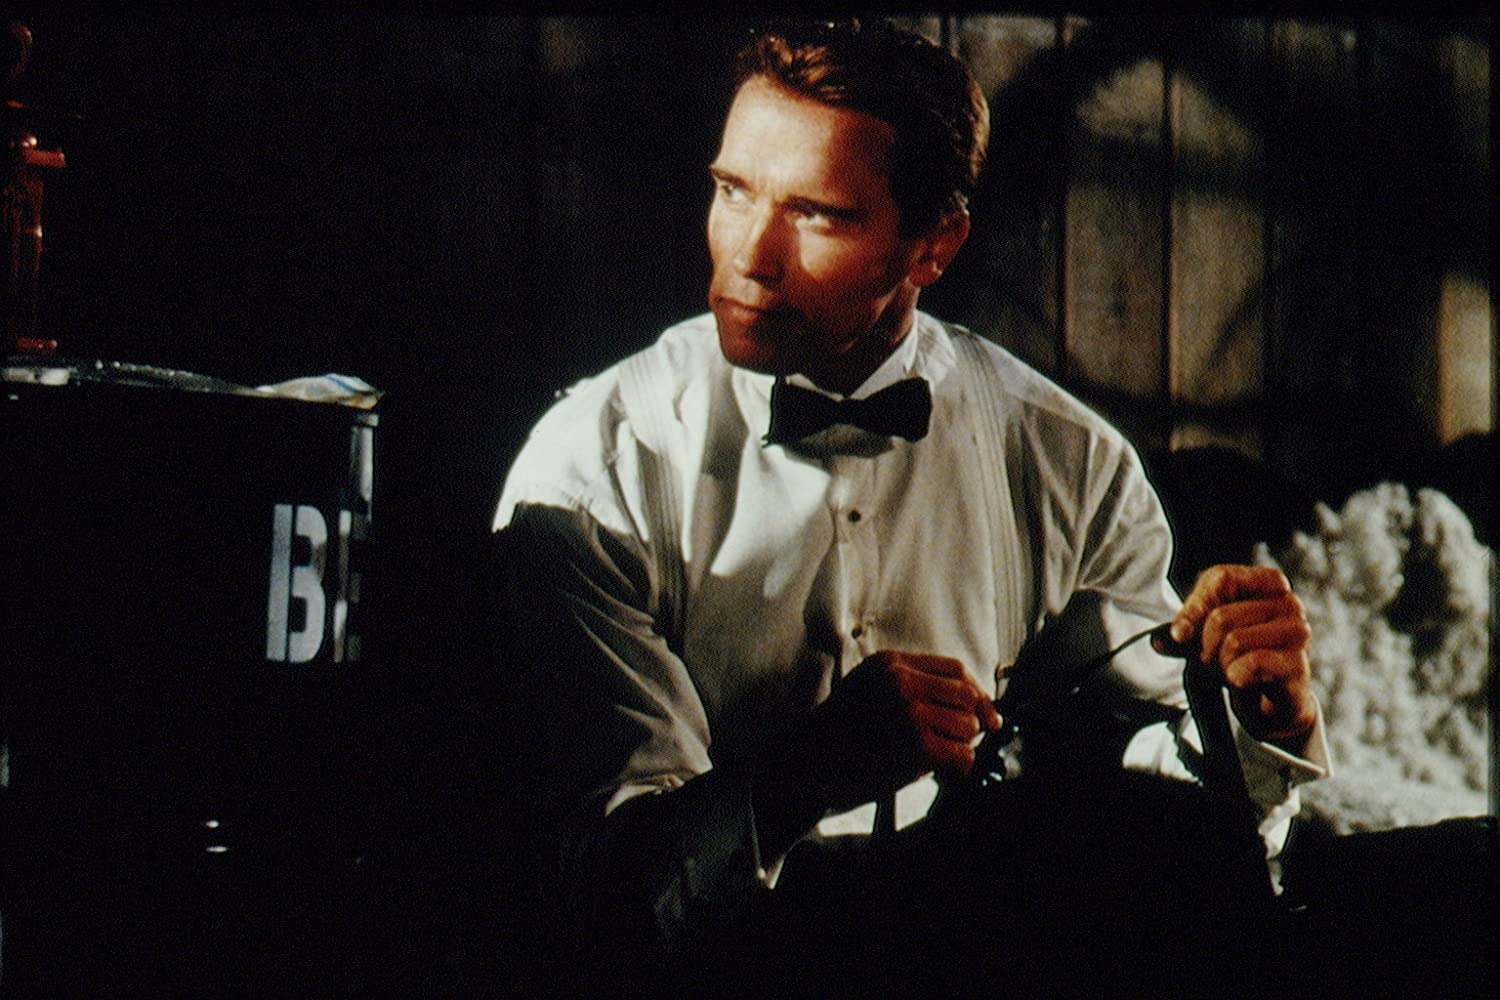 Arnold Schwarzenegger in True Lies (1994)